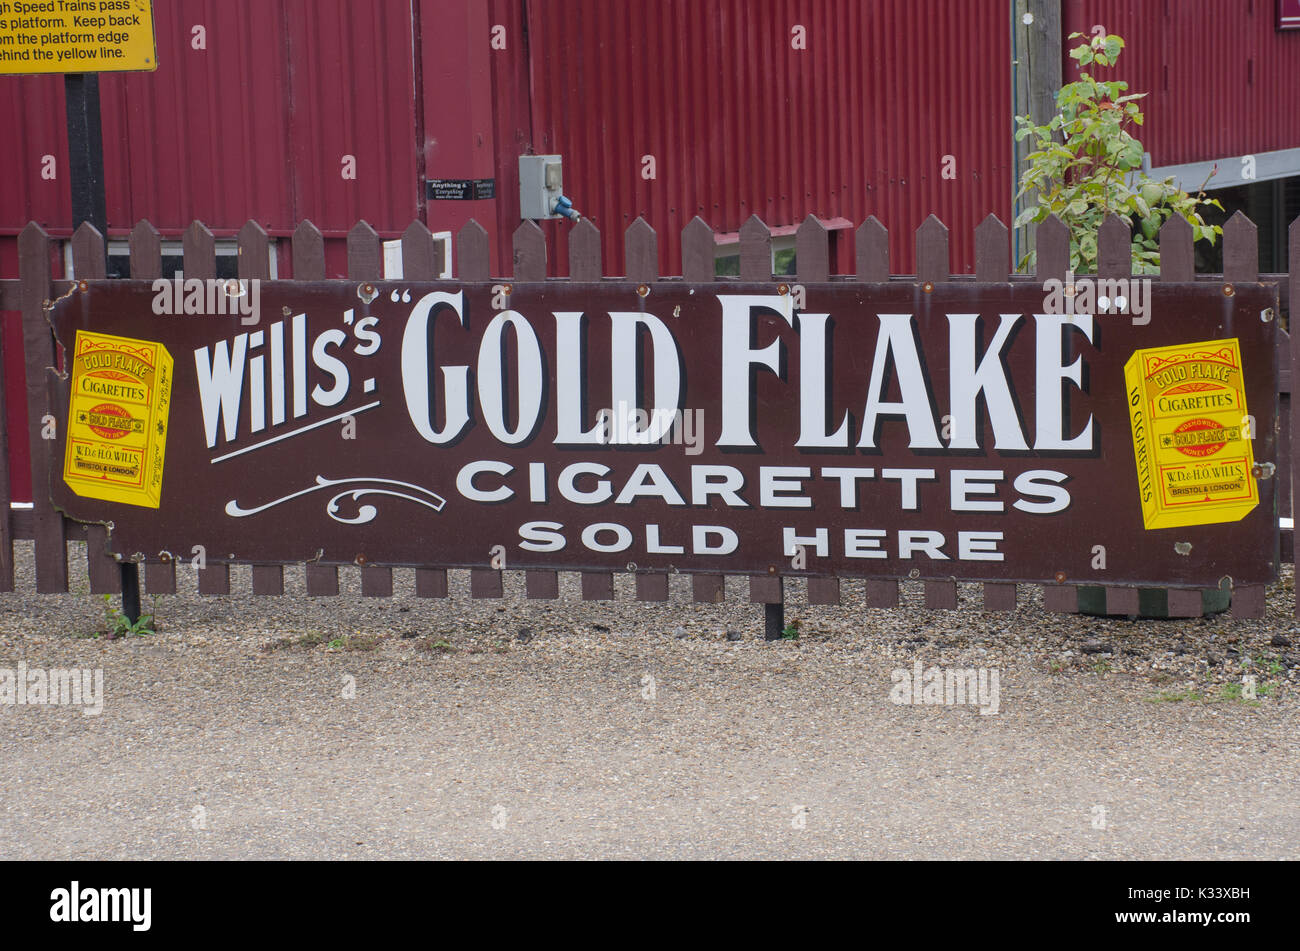 Norfolk  United Kingdom   August  21 2017: Classic Goldflake cigarette advertising sign - Stock Image